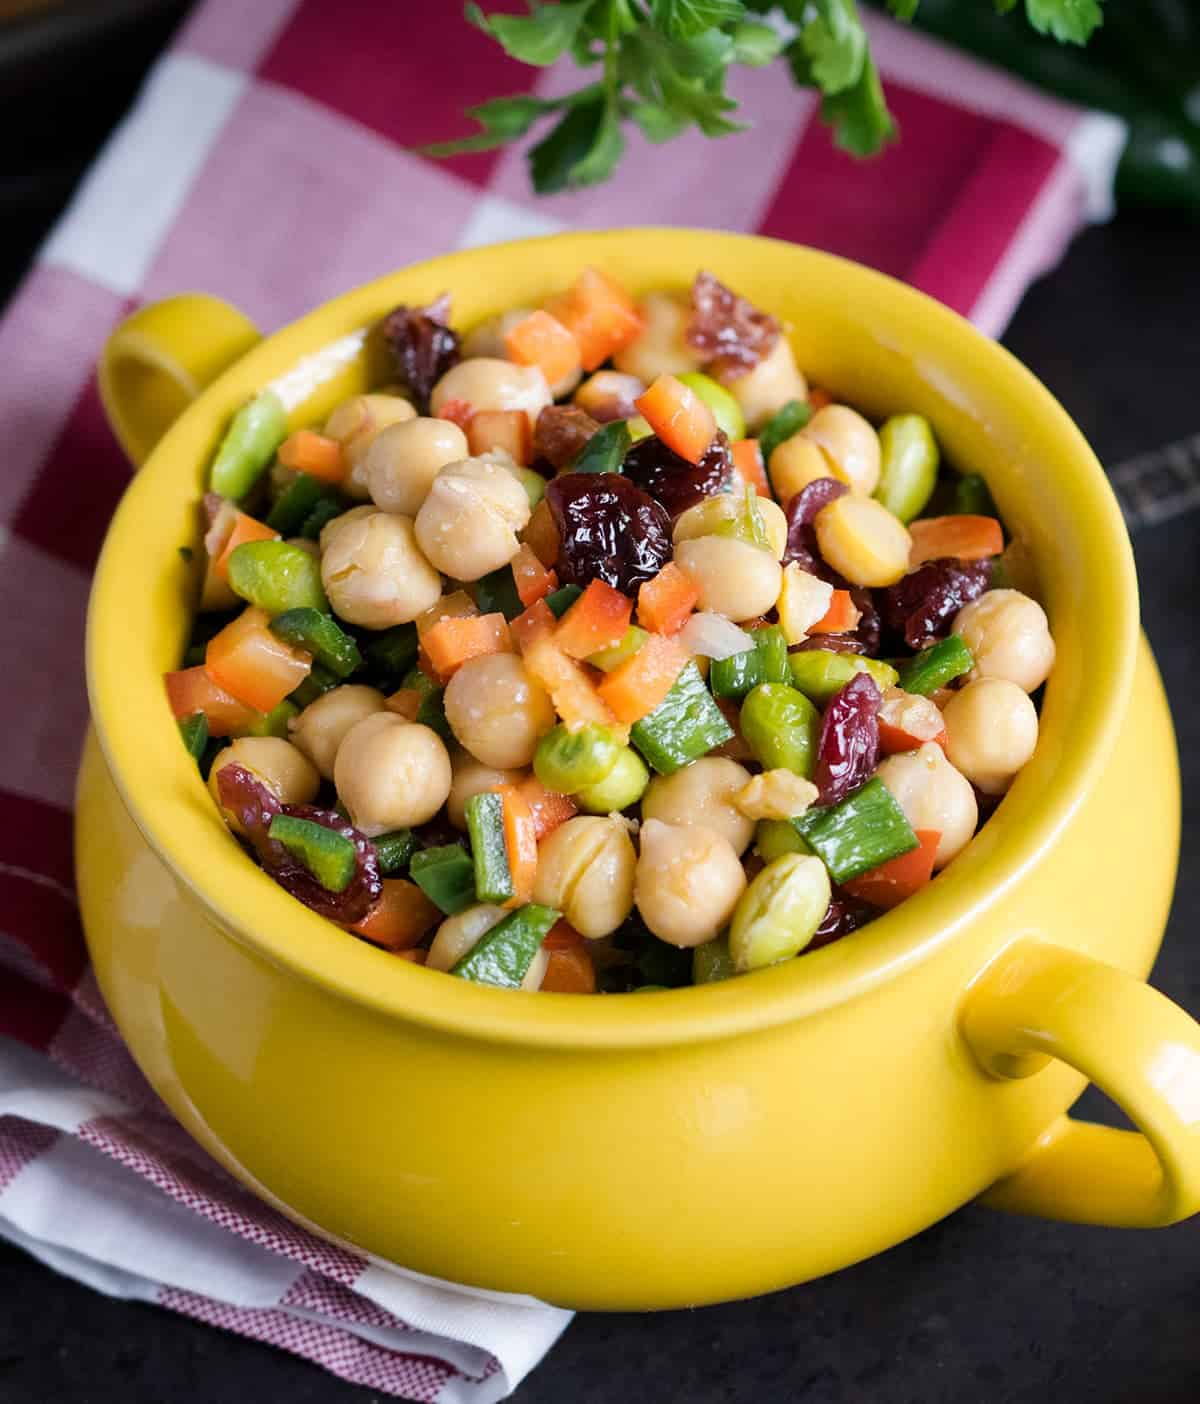 Chickpea Salad - A delicious chopped salad with lots of veggies, cranberries, and a tangy vinaigrette dressing in yellow crock